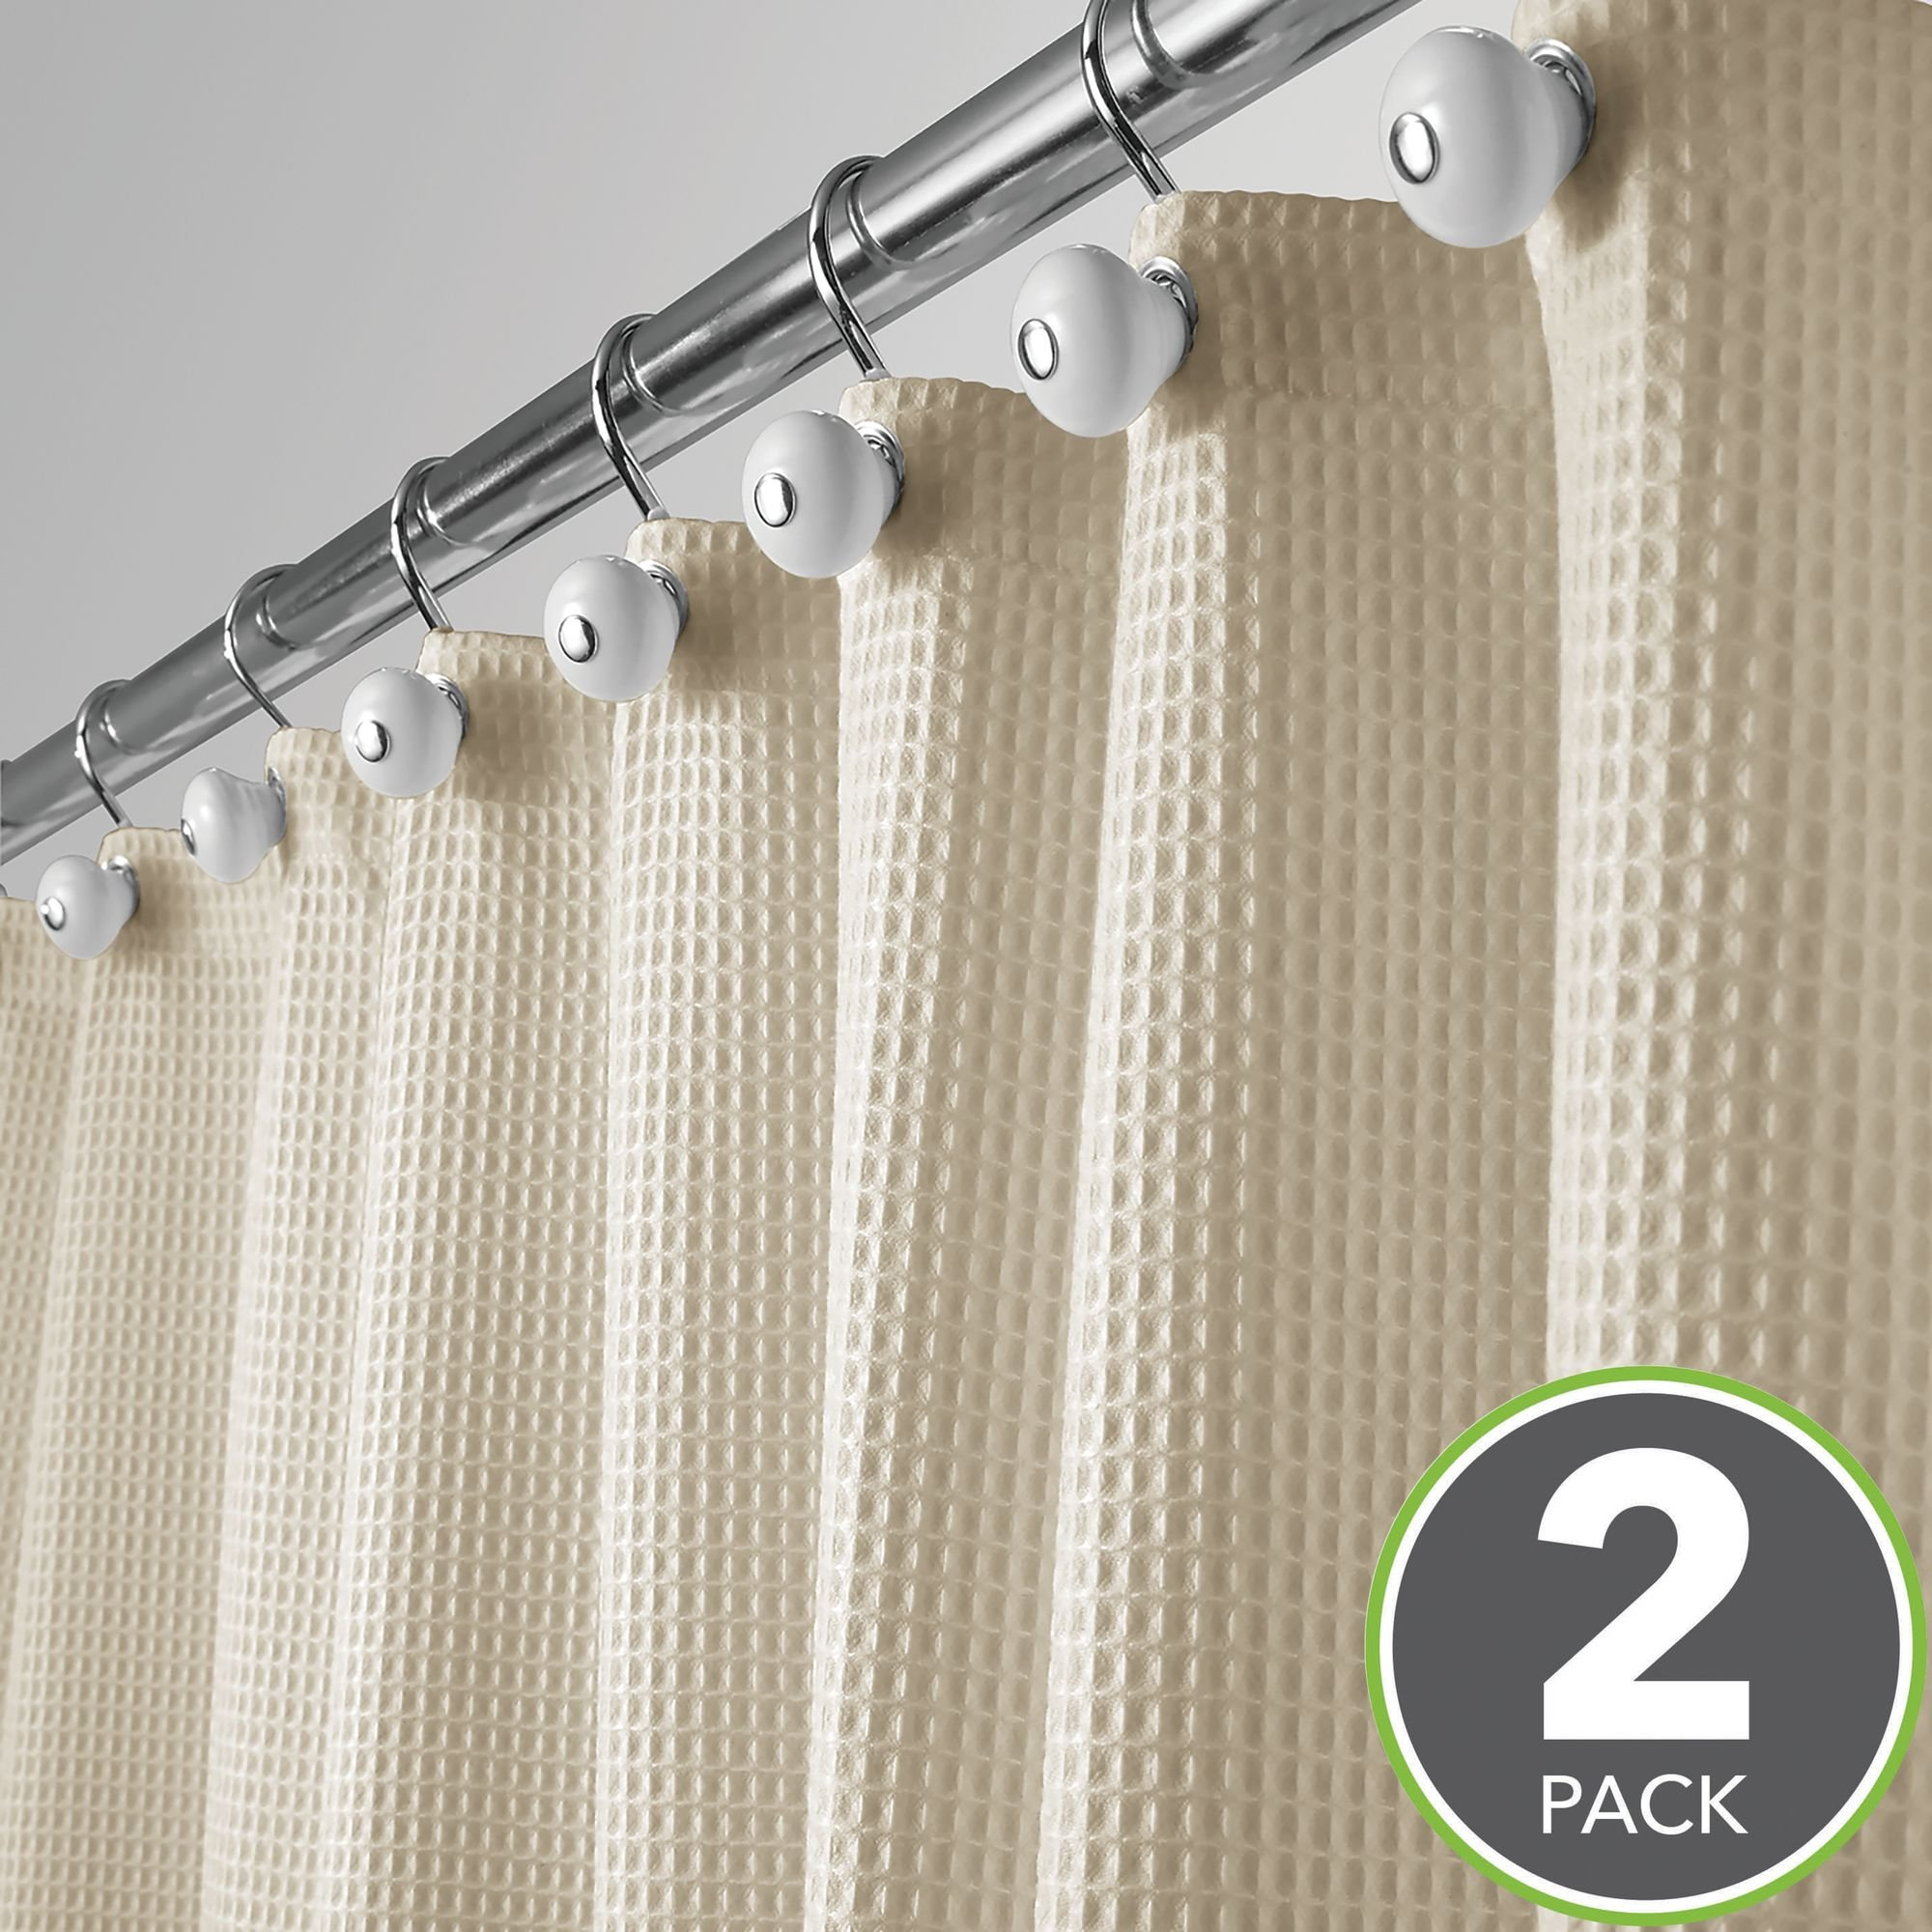 mDesign Hotel Quality Polyester/Cotton Blend Fabric Shower Curtain, Rustproof Metal Grommets - Waffle Weave for Bathroom Showers and Bathtubs - 72'' x 72'', Pack of 2, Khaki/Deep Tan